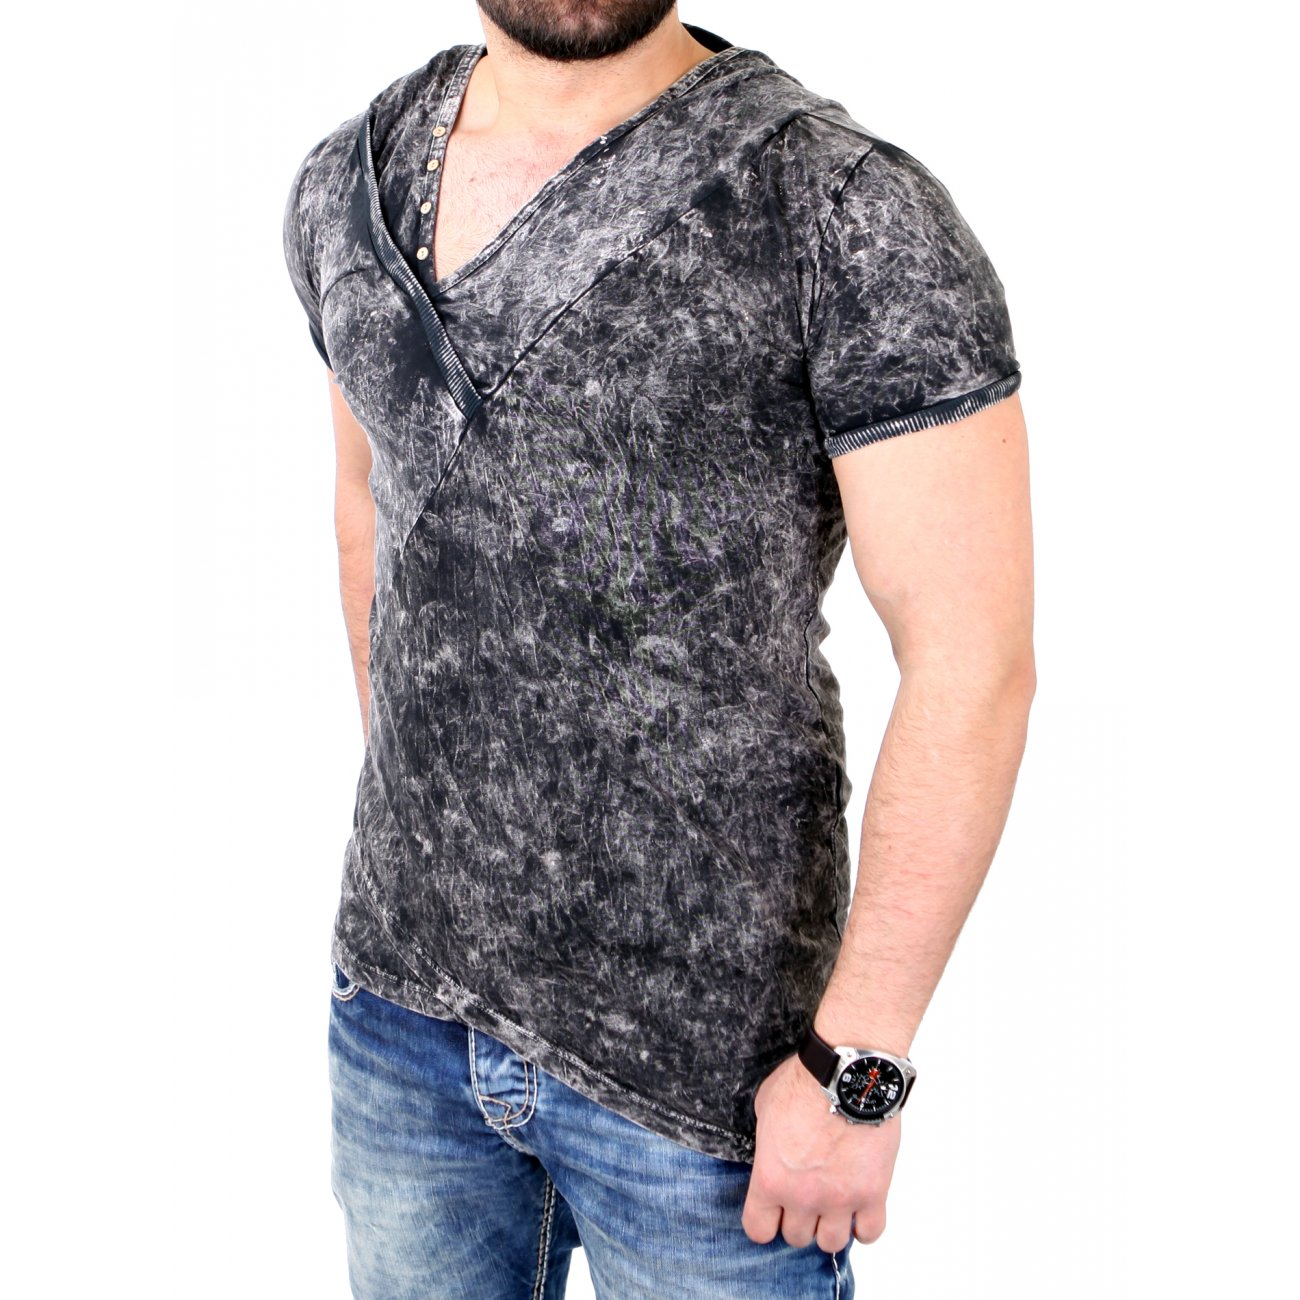 t shirt hooded tazzio batik style shirts g nstig kaufen. Black Bedroom Furniture Sets. Home Design Ideas